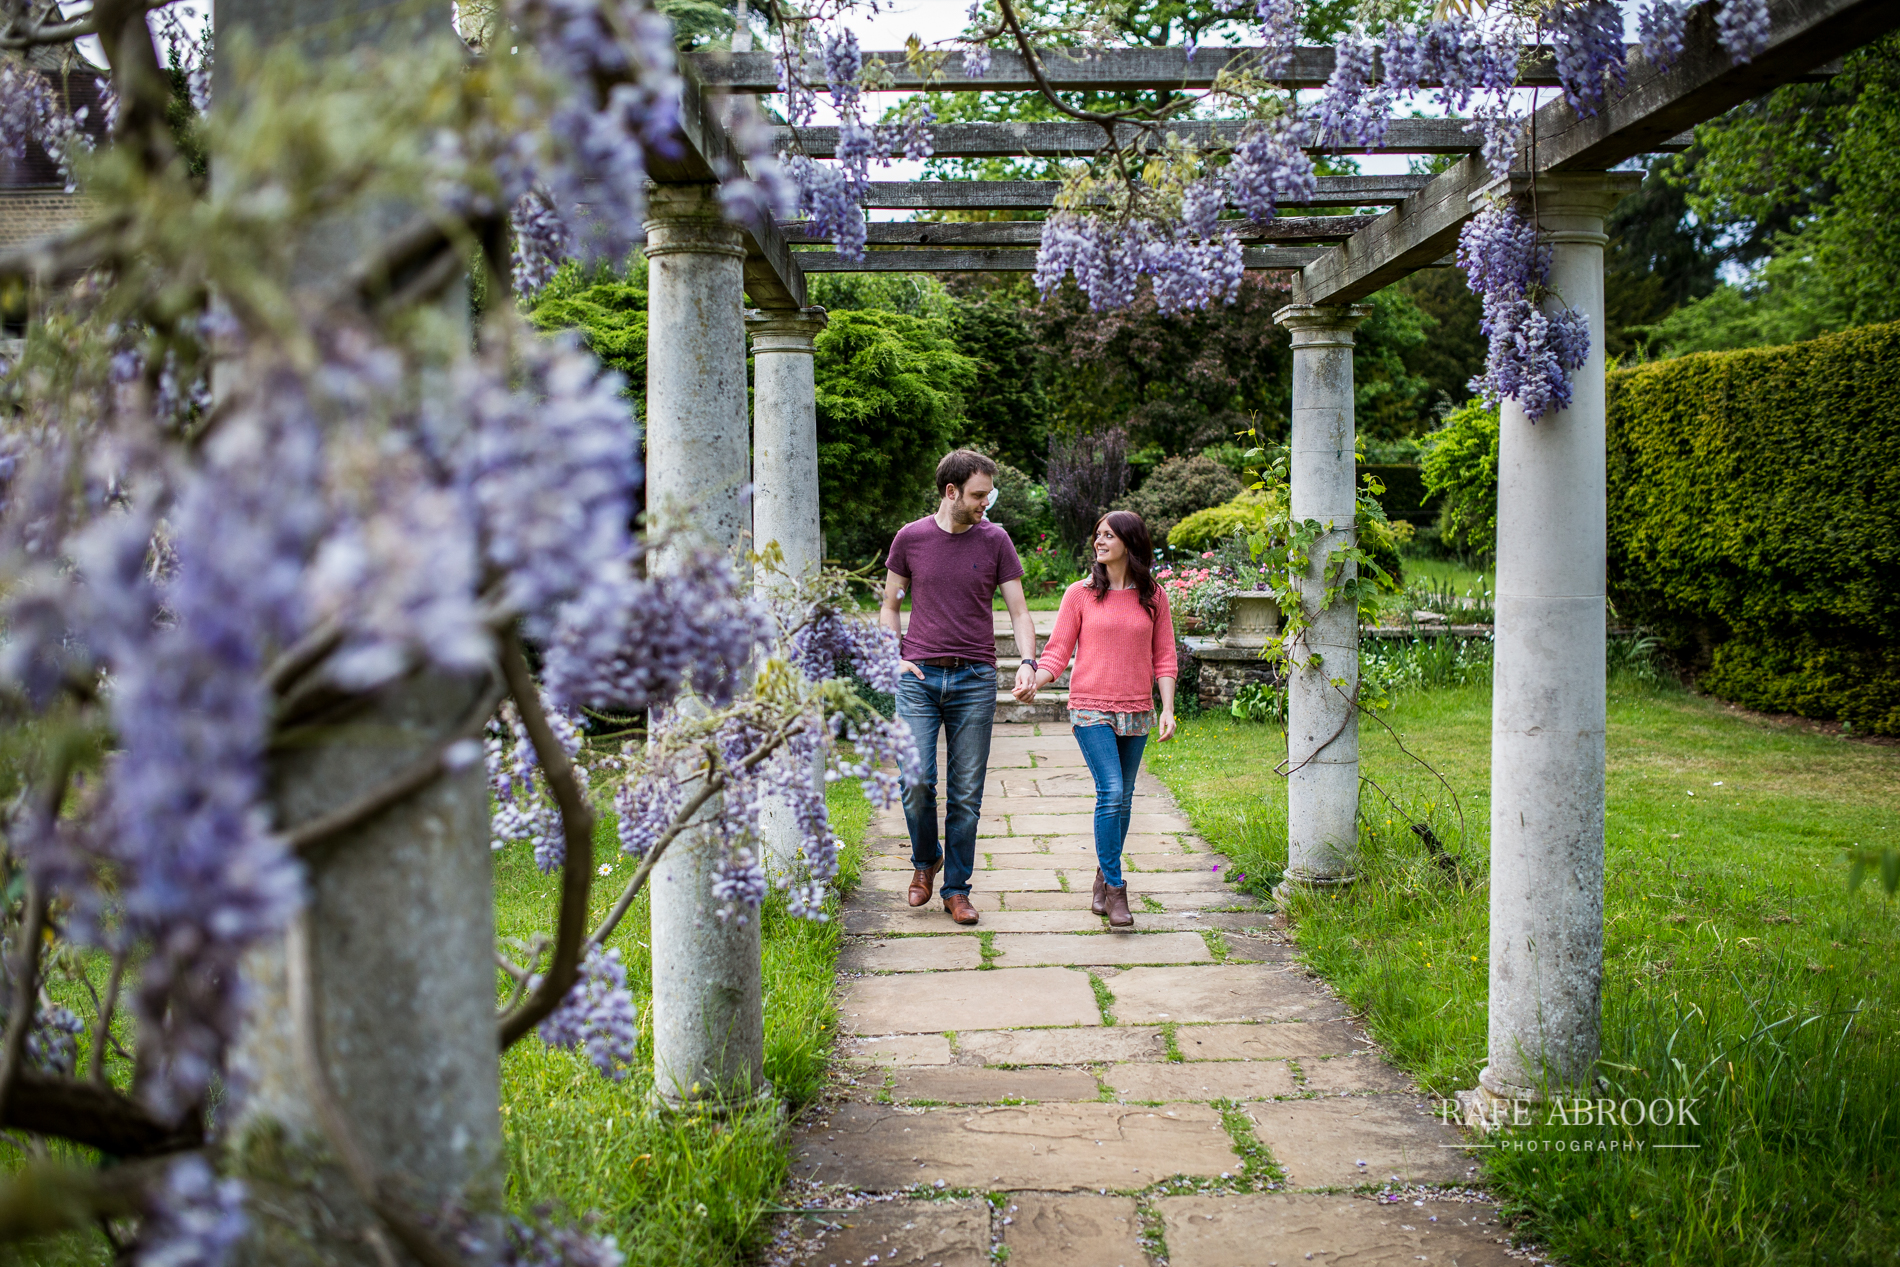 nicola & andy engagement shoot rspb the lodge sandy bedfordshire-5021.jpg